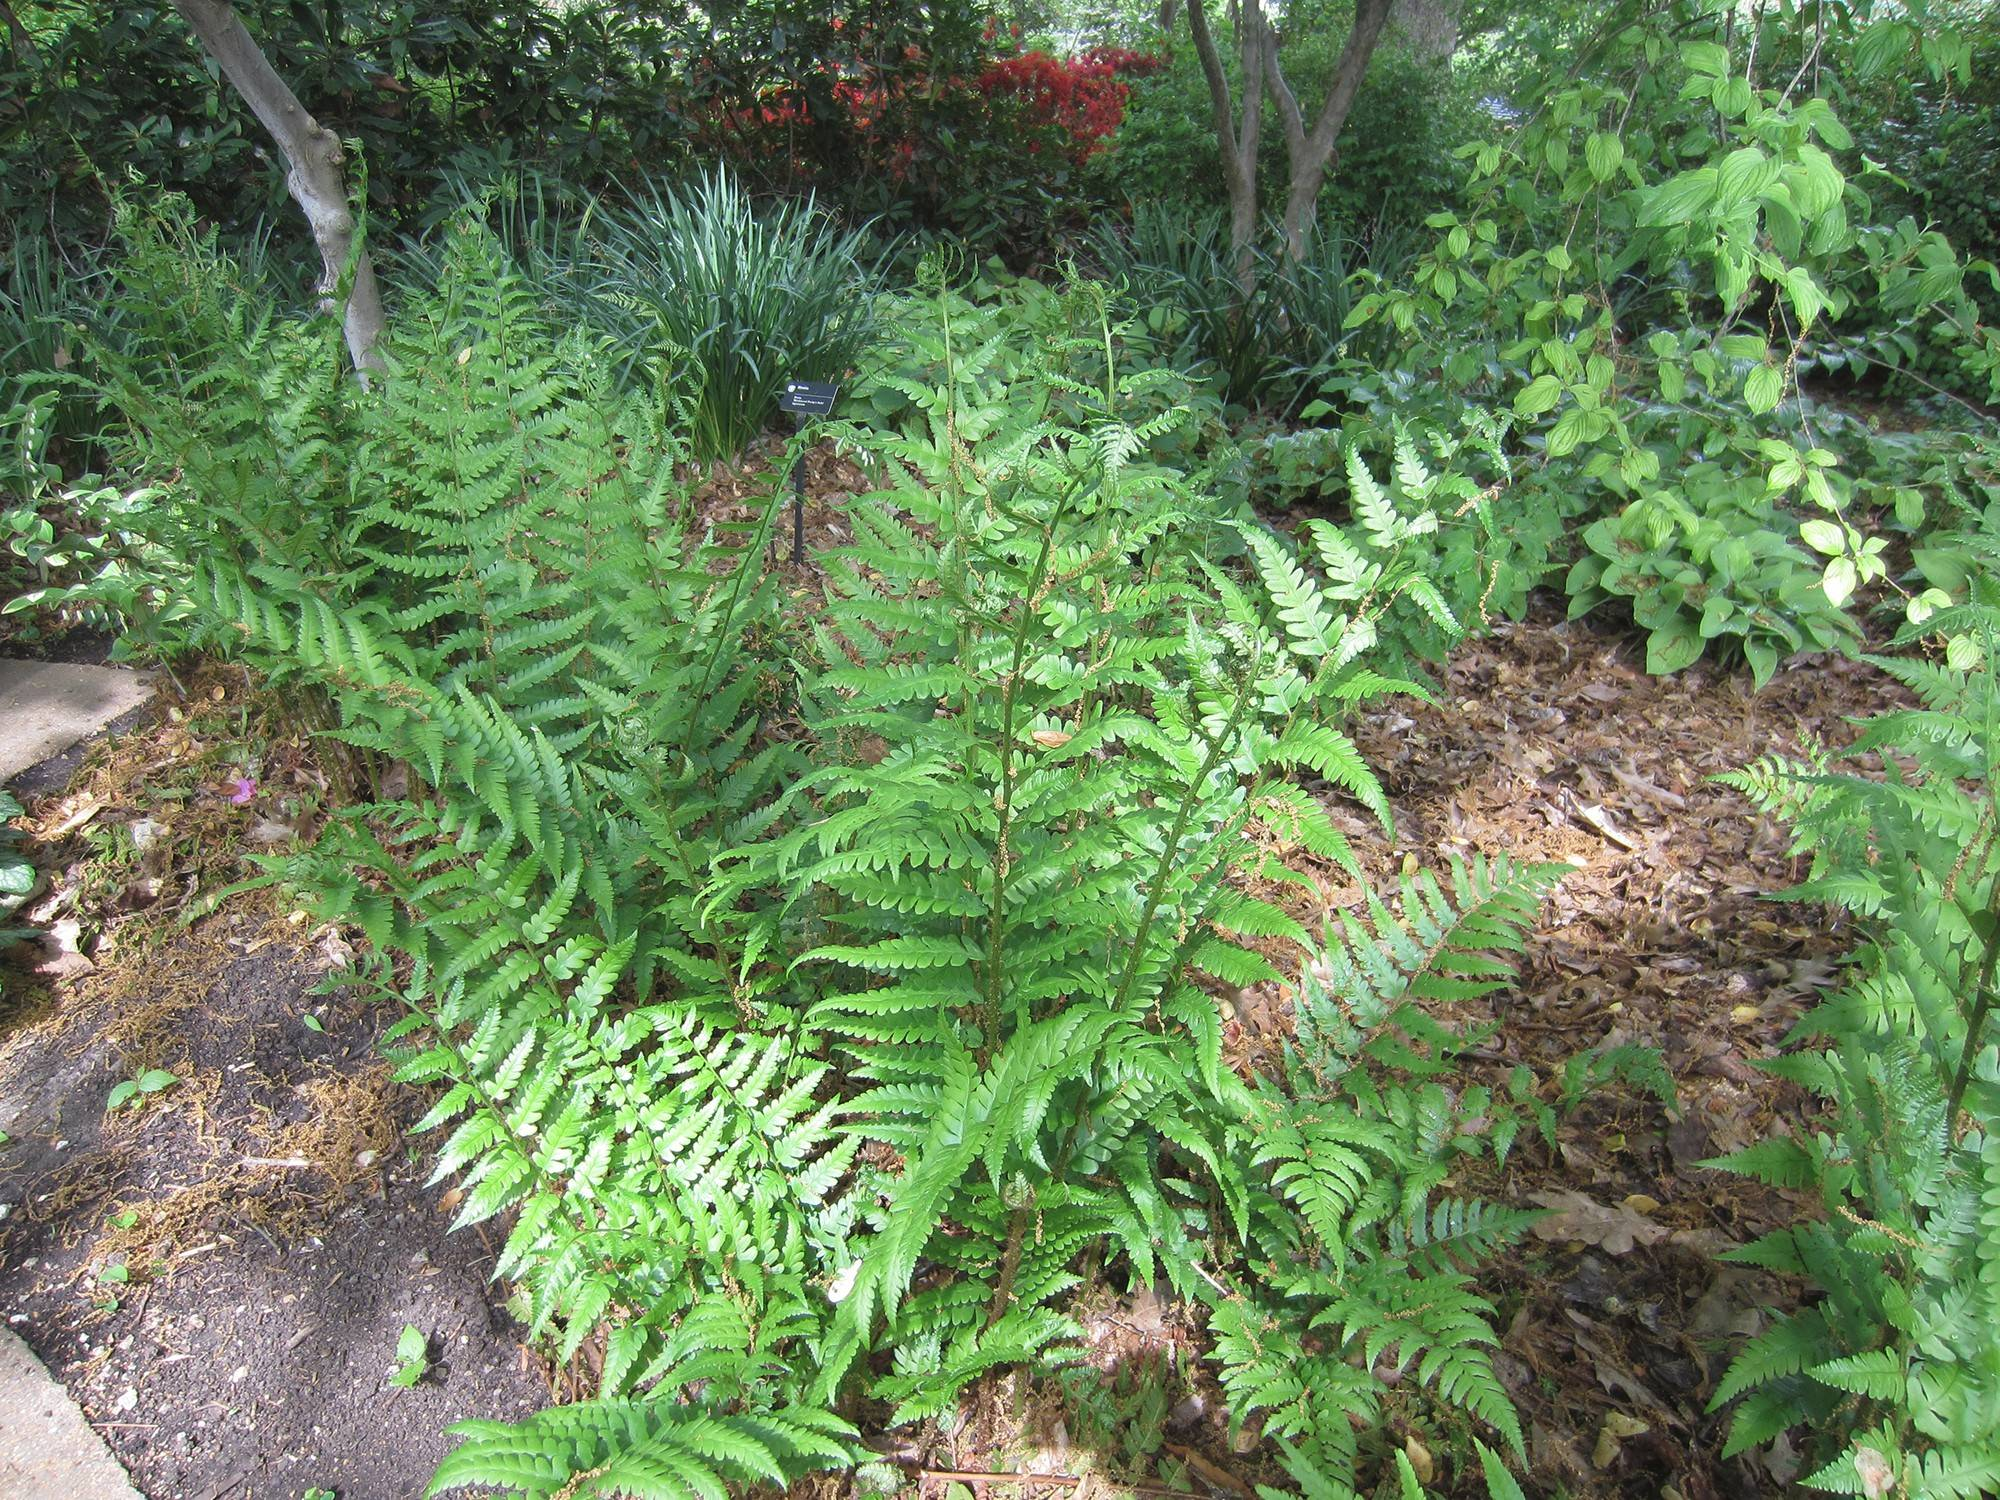 The Dixie wood fern, a natural hybrid of two wood fern species, grows to 4 feet or more.